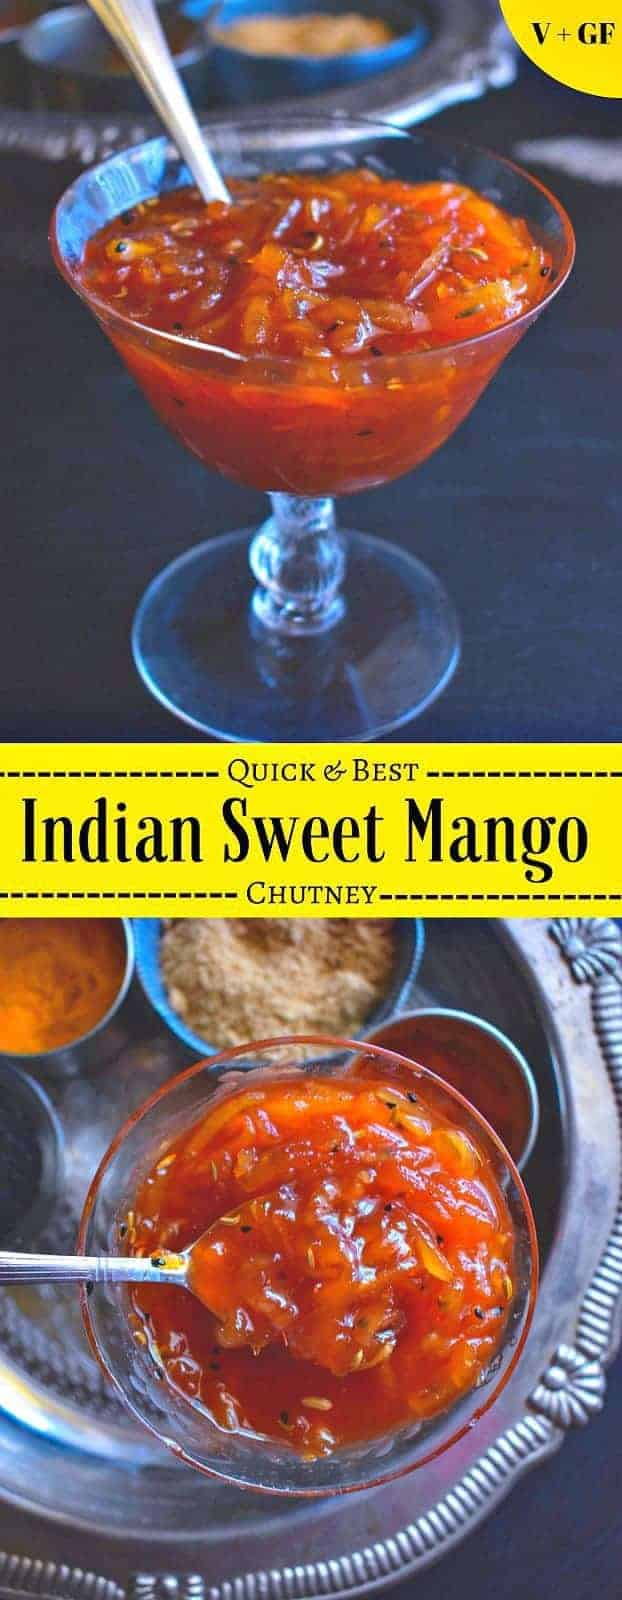 Quick and Best Indian Sweet Mango Chutney Recipe: #mango #chutney #vegan #indian #sweet